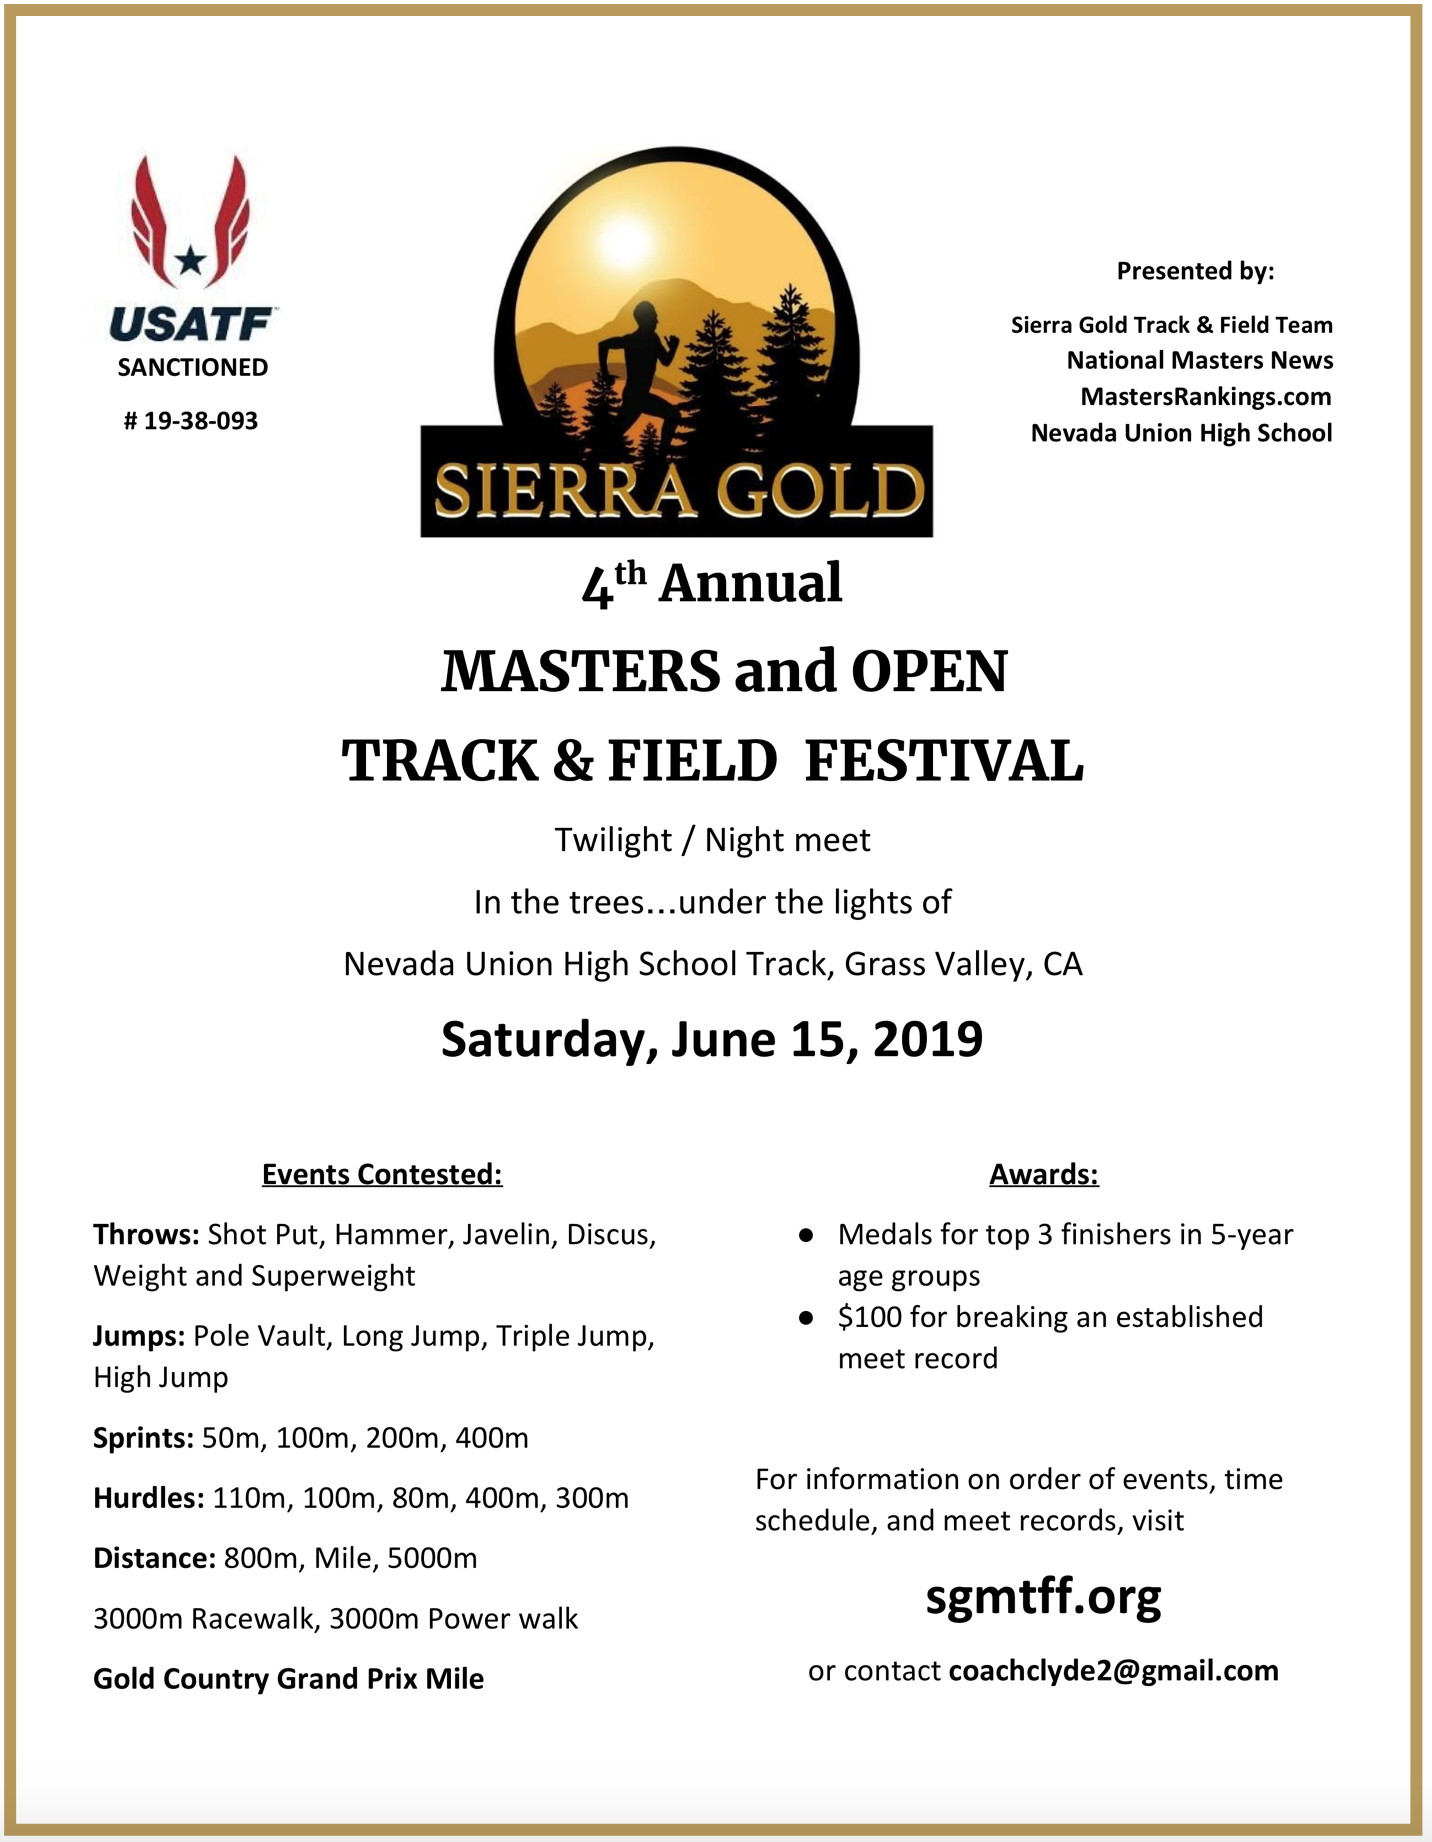 SIERRA GOLD MASTERS AND OPEN TRACK AND FIELD FESTIVAL